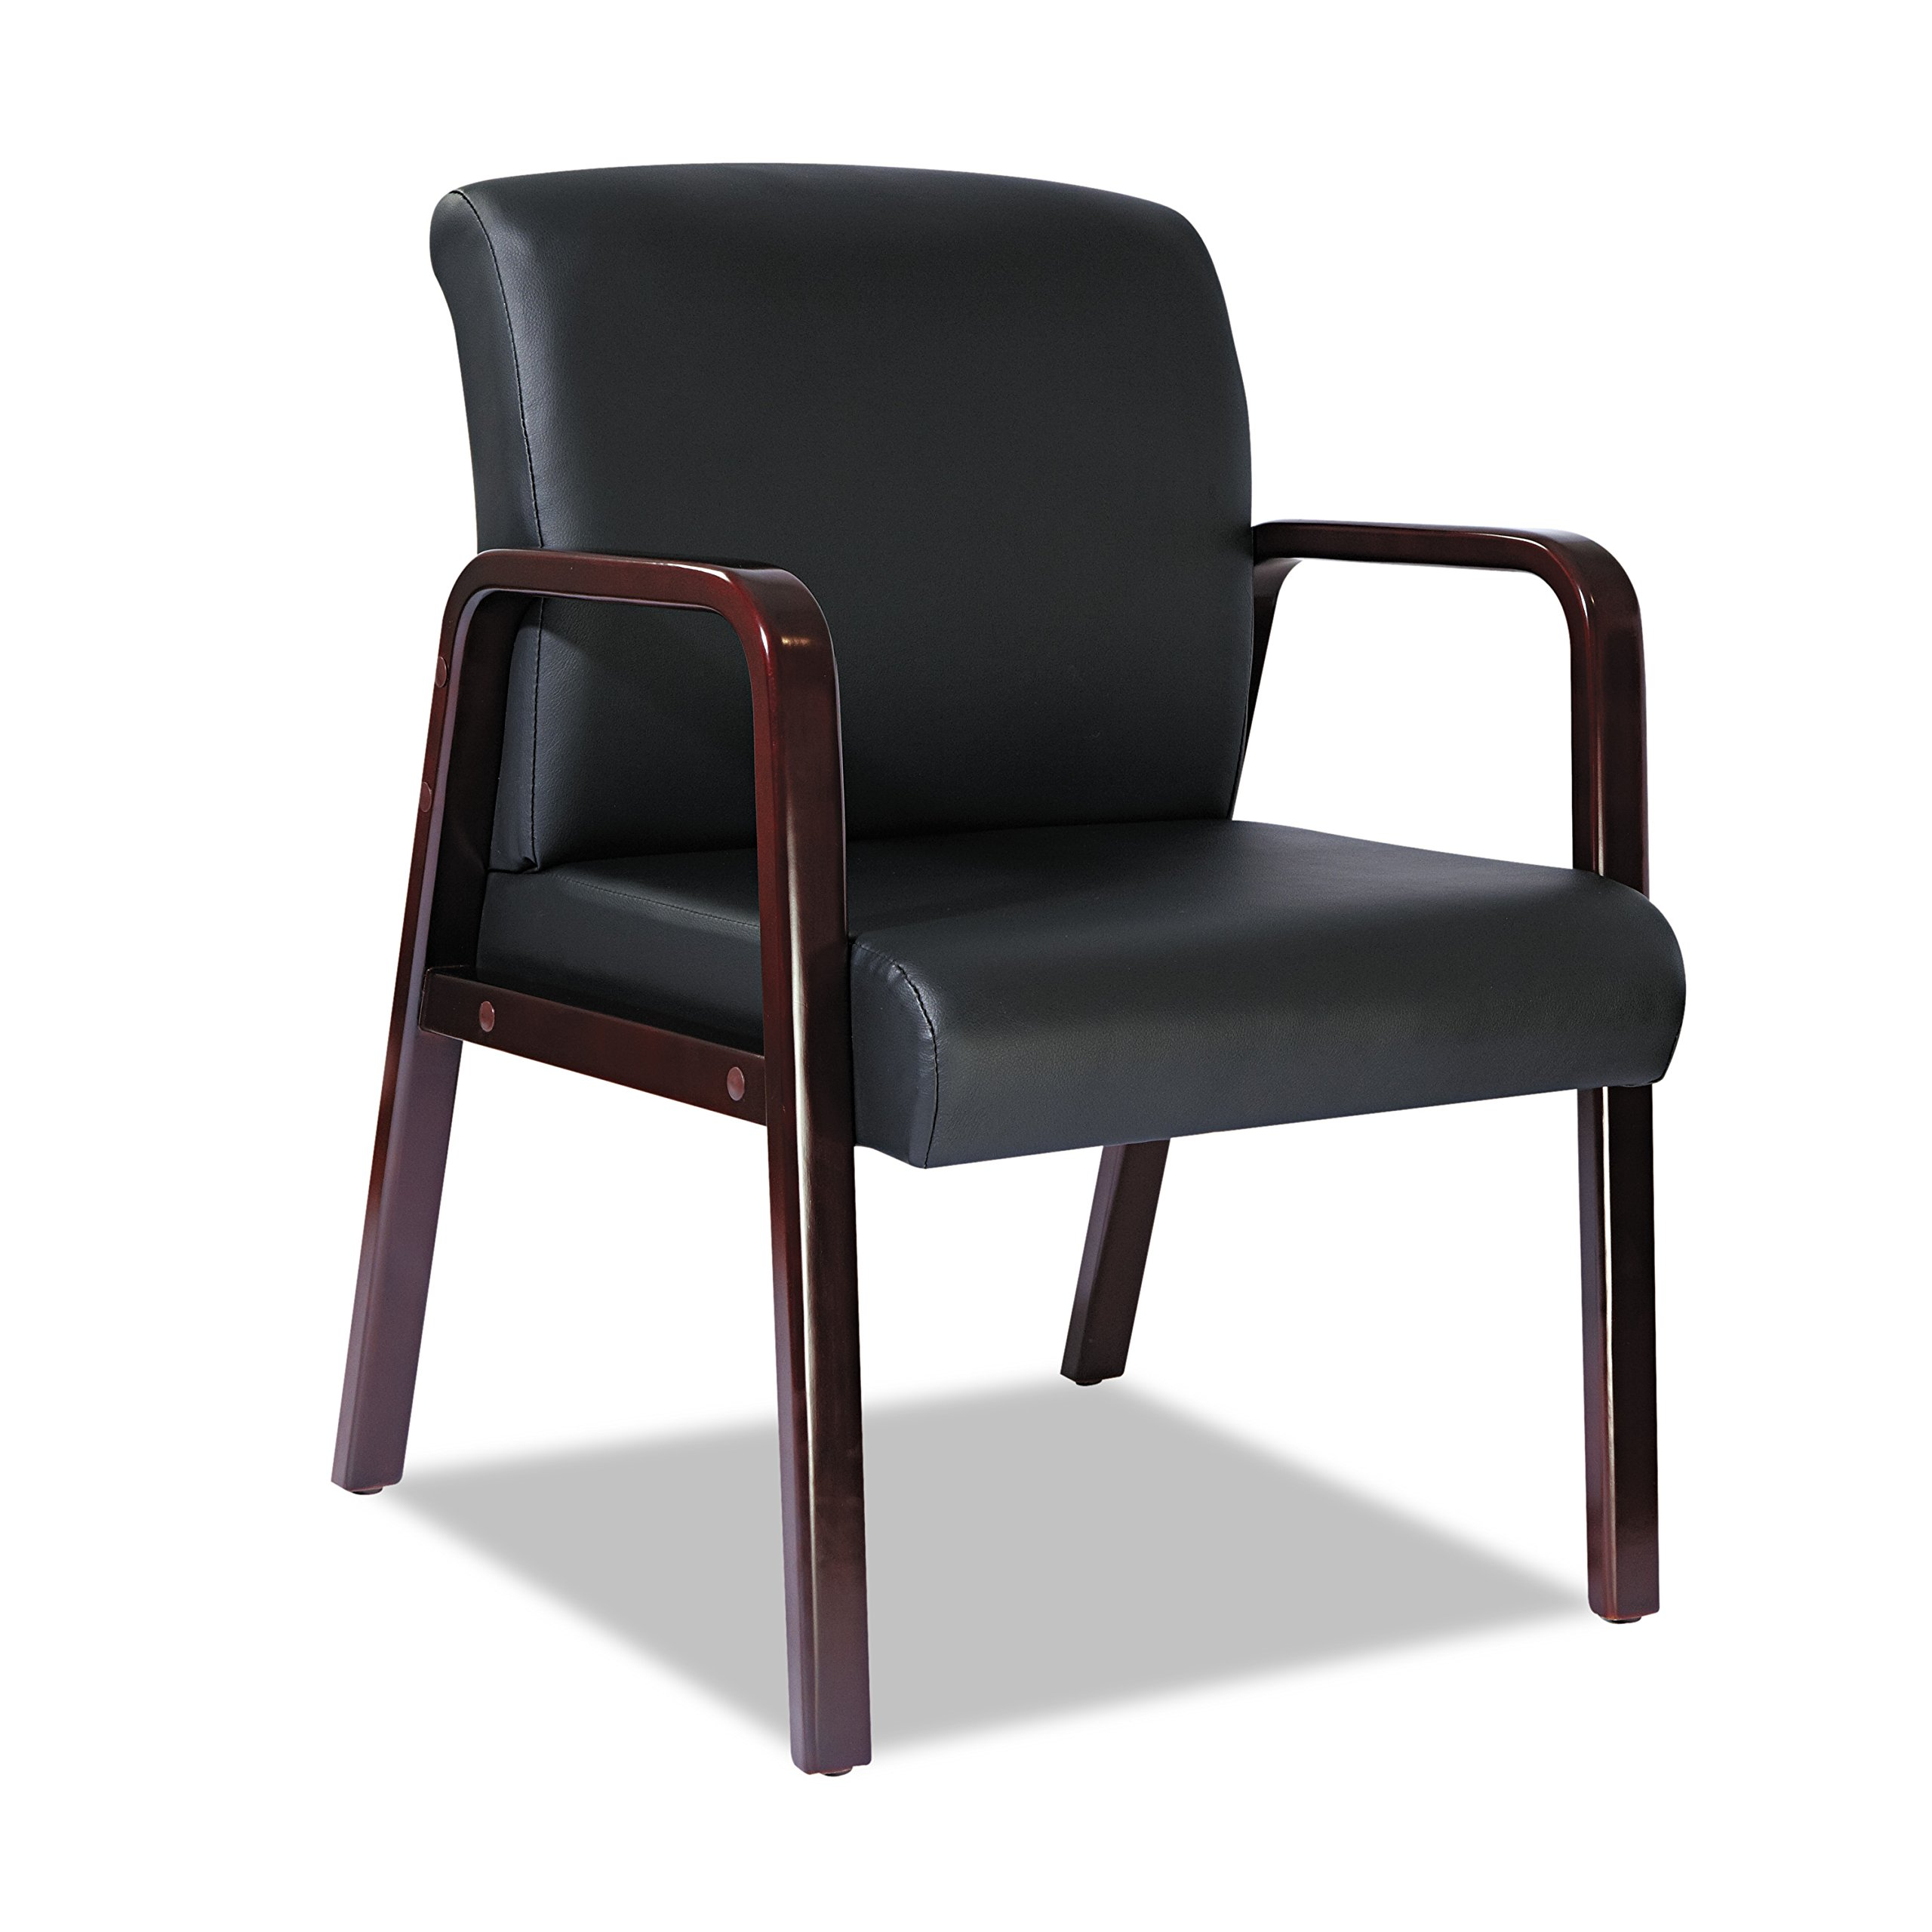 Alera Reception Lounge Series Guest Chair, Mahogany/Black Leather by Alera